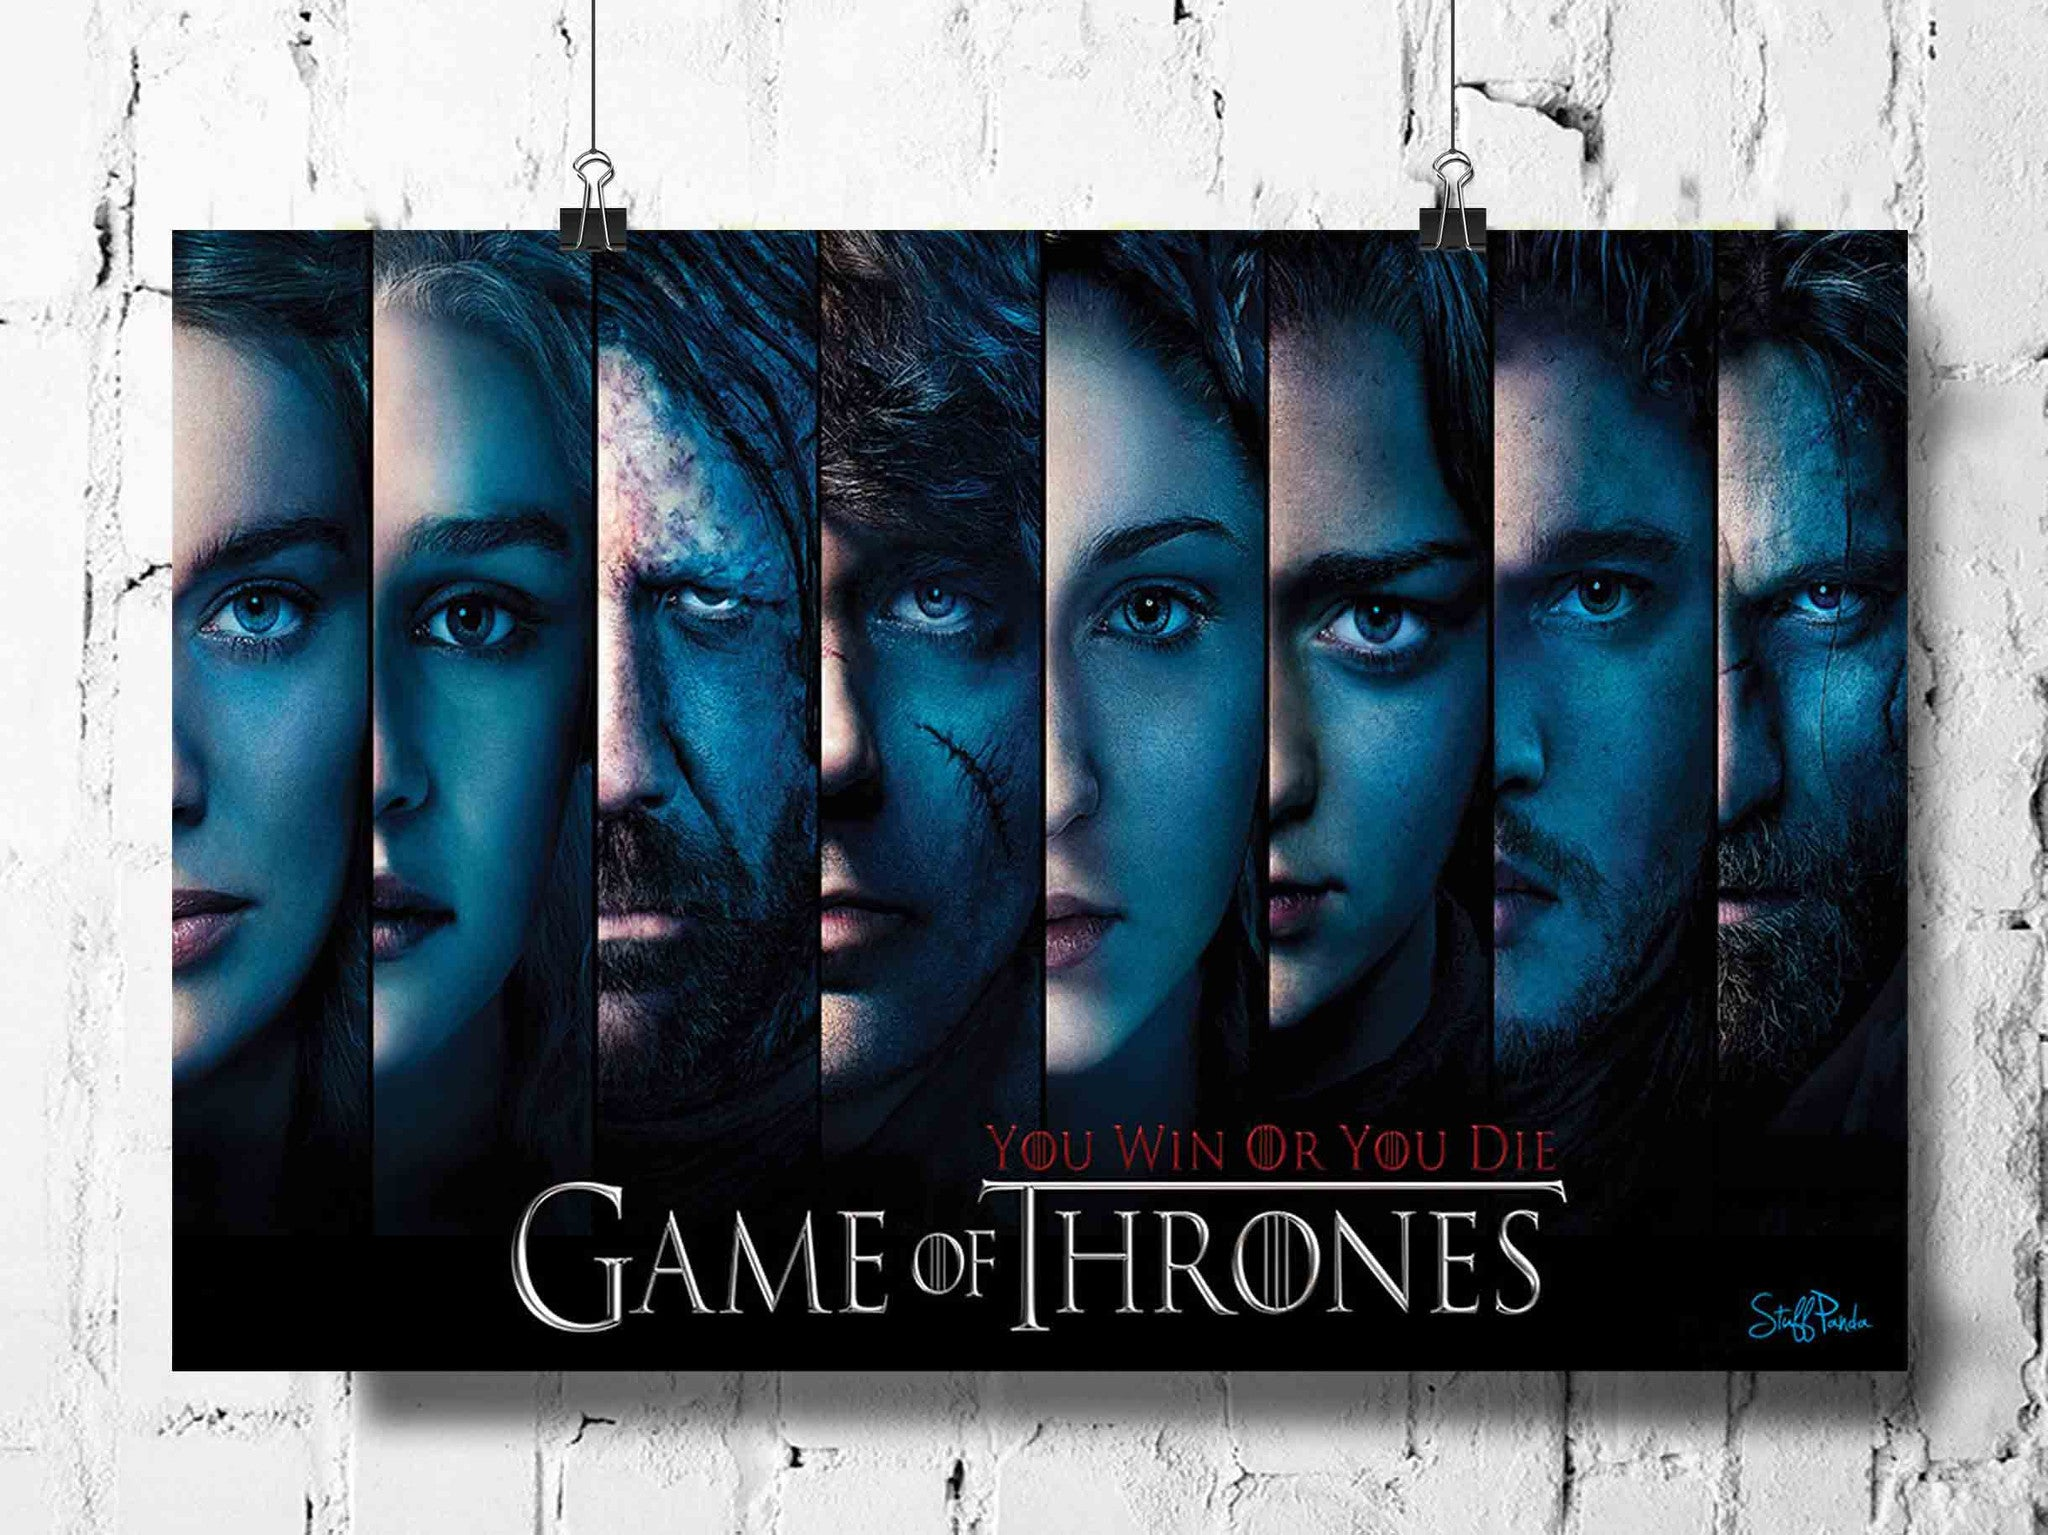 Cool Funky Game of Thrones wall posters, art prints, stickers decals All faces - stuffpanda - 1